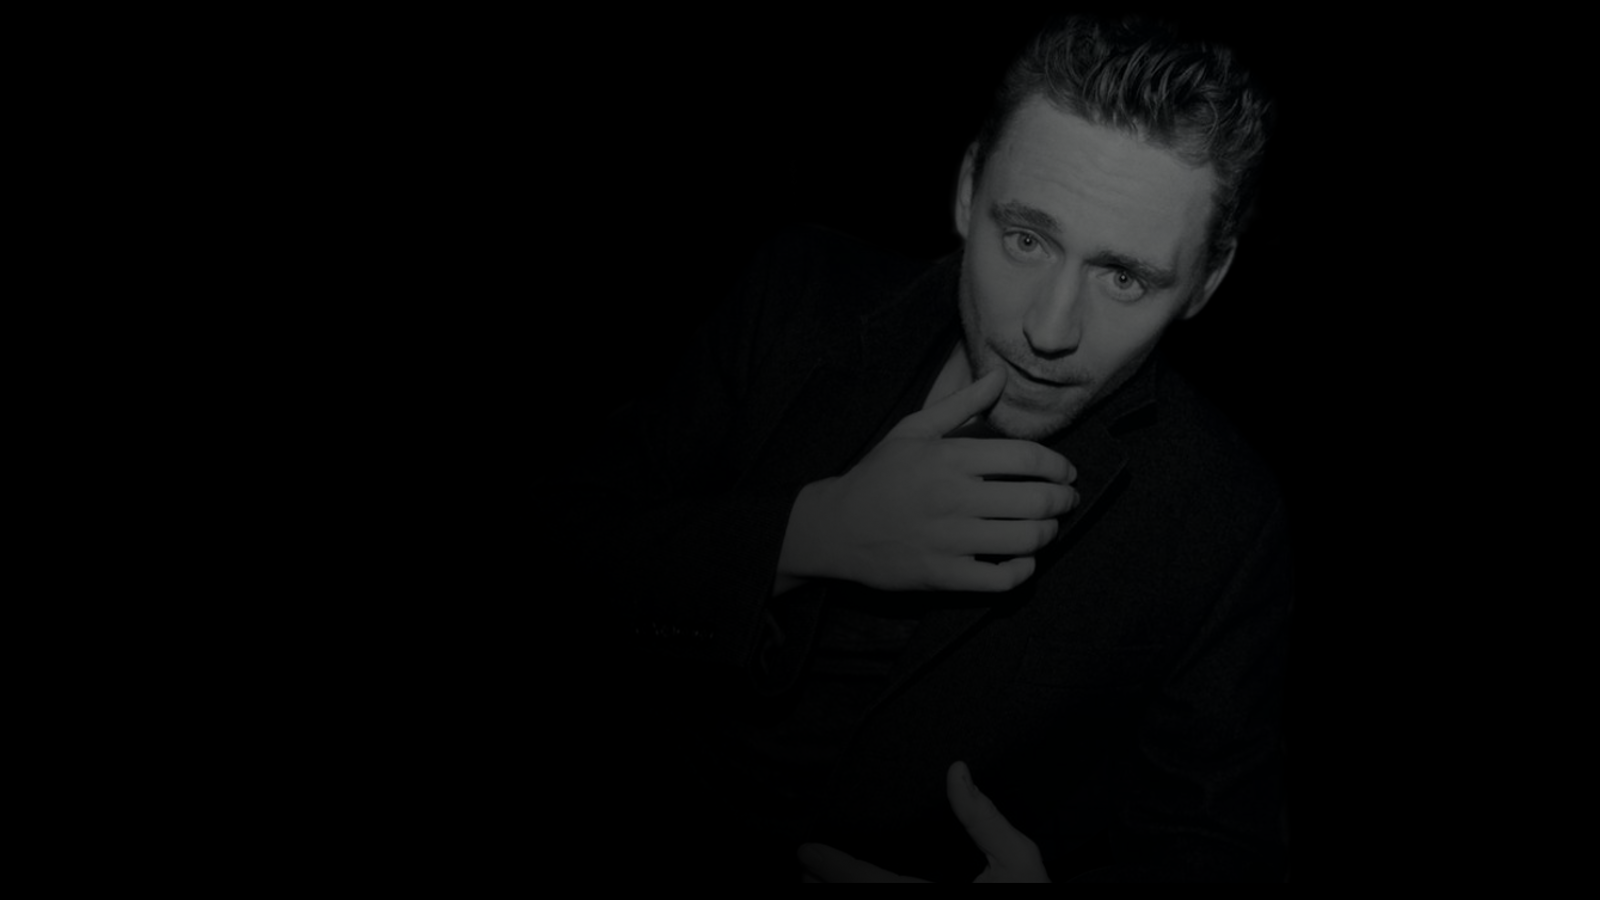 Tom Hiddleston Wallpaper by KristaMae on deviantART 1600x900